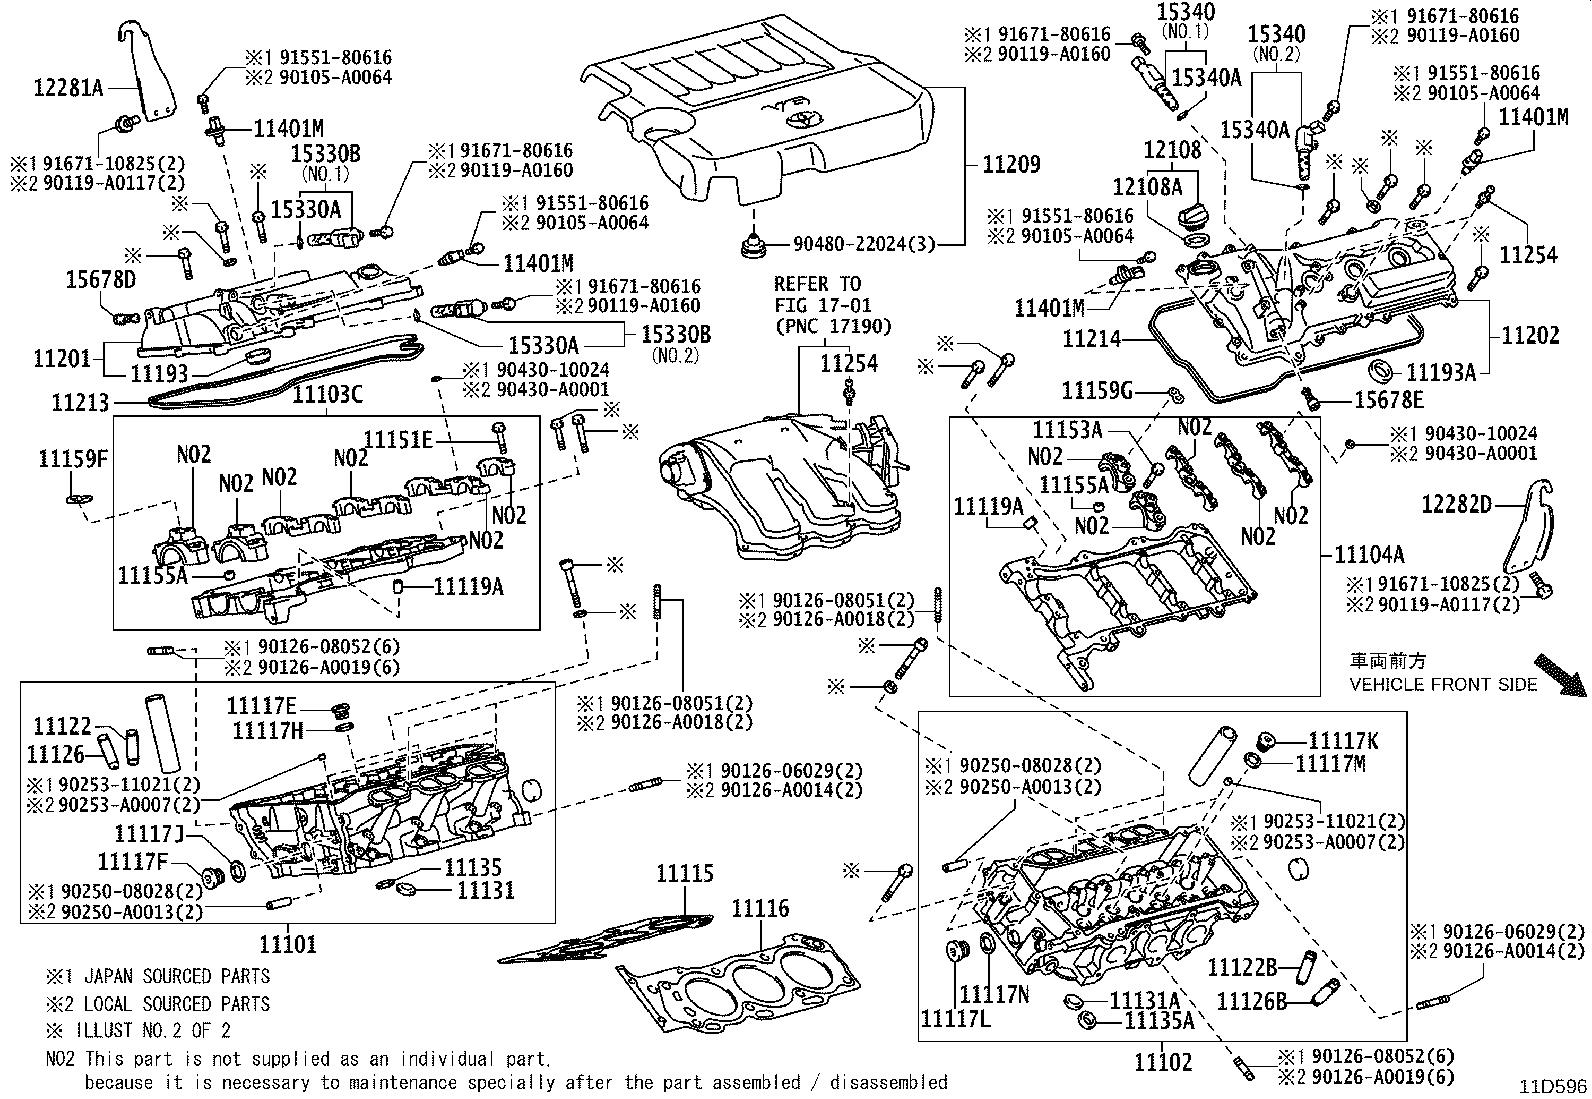 2007 Toyota Avalon Engine Variable Valve Timing (VVT